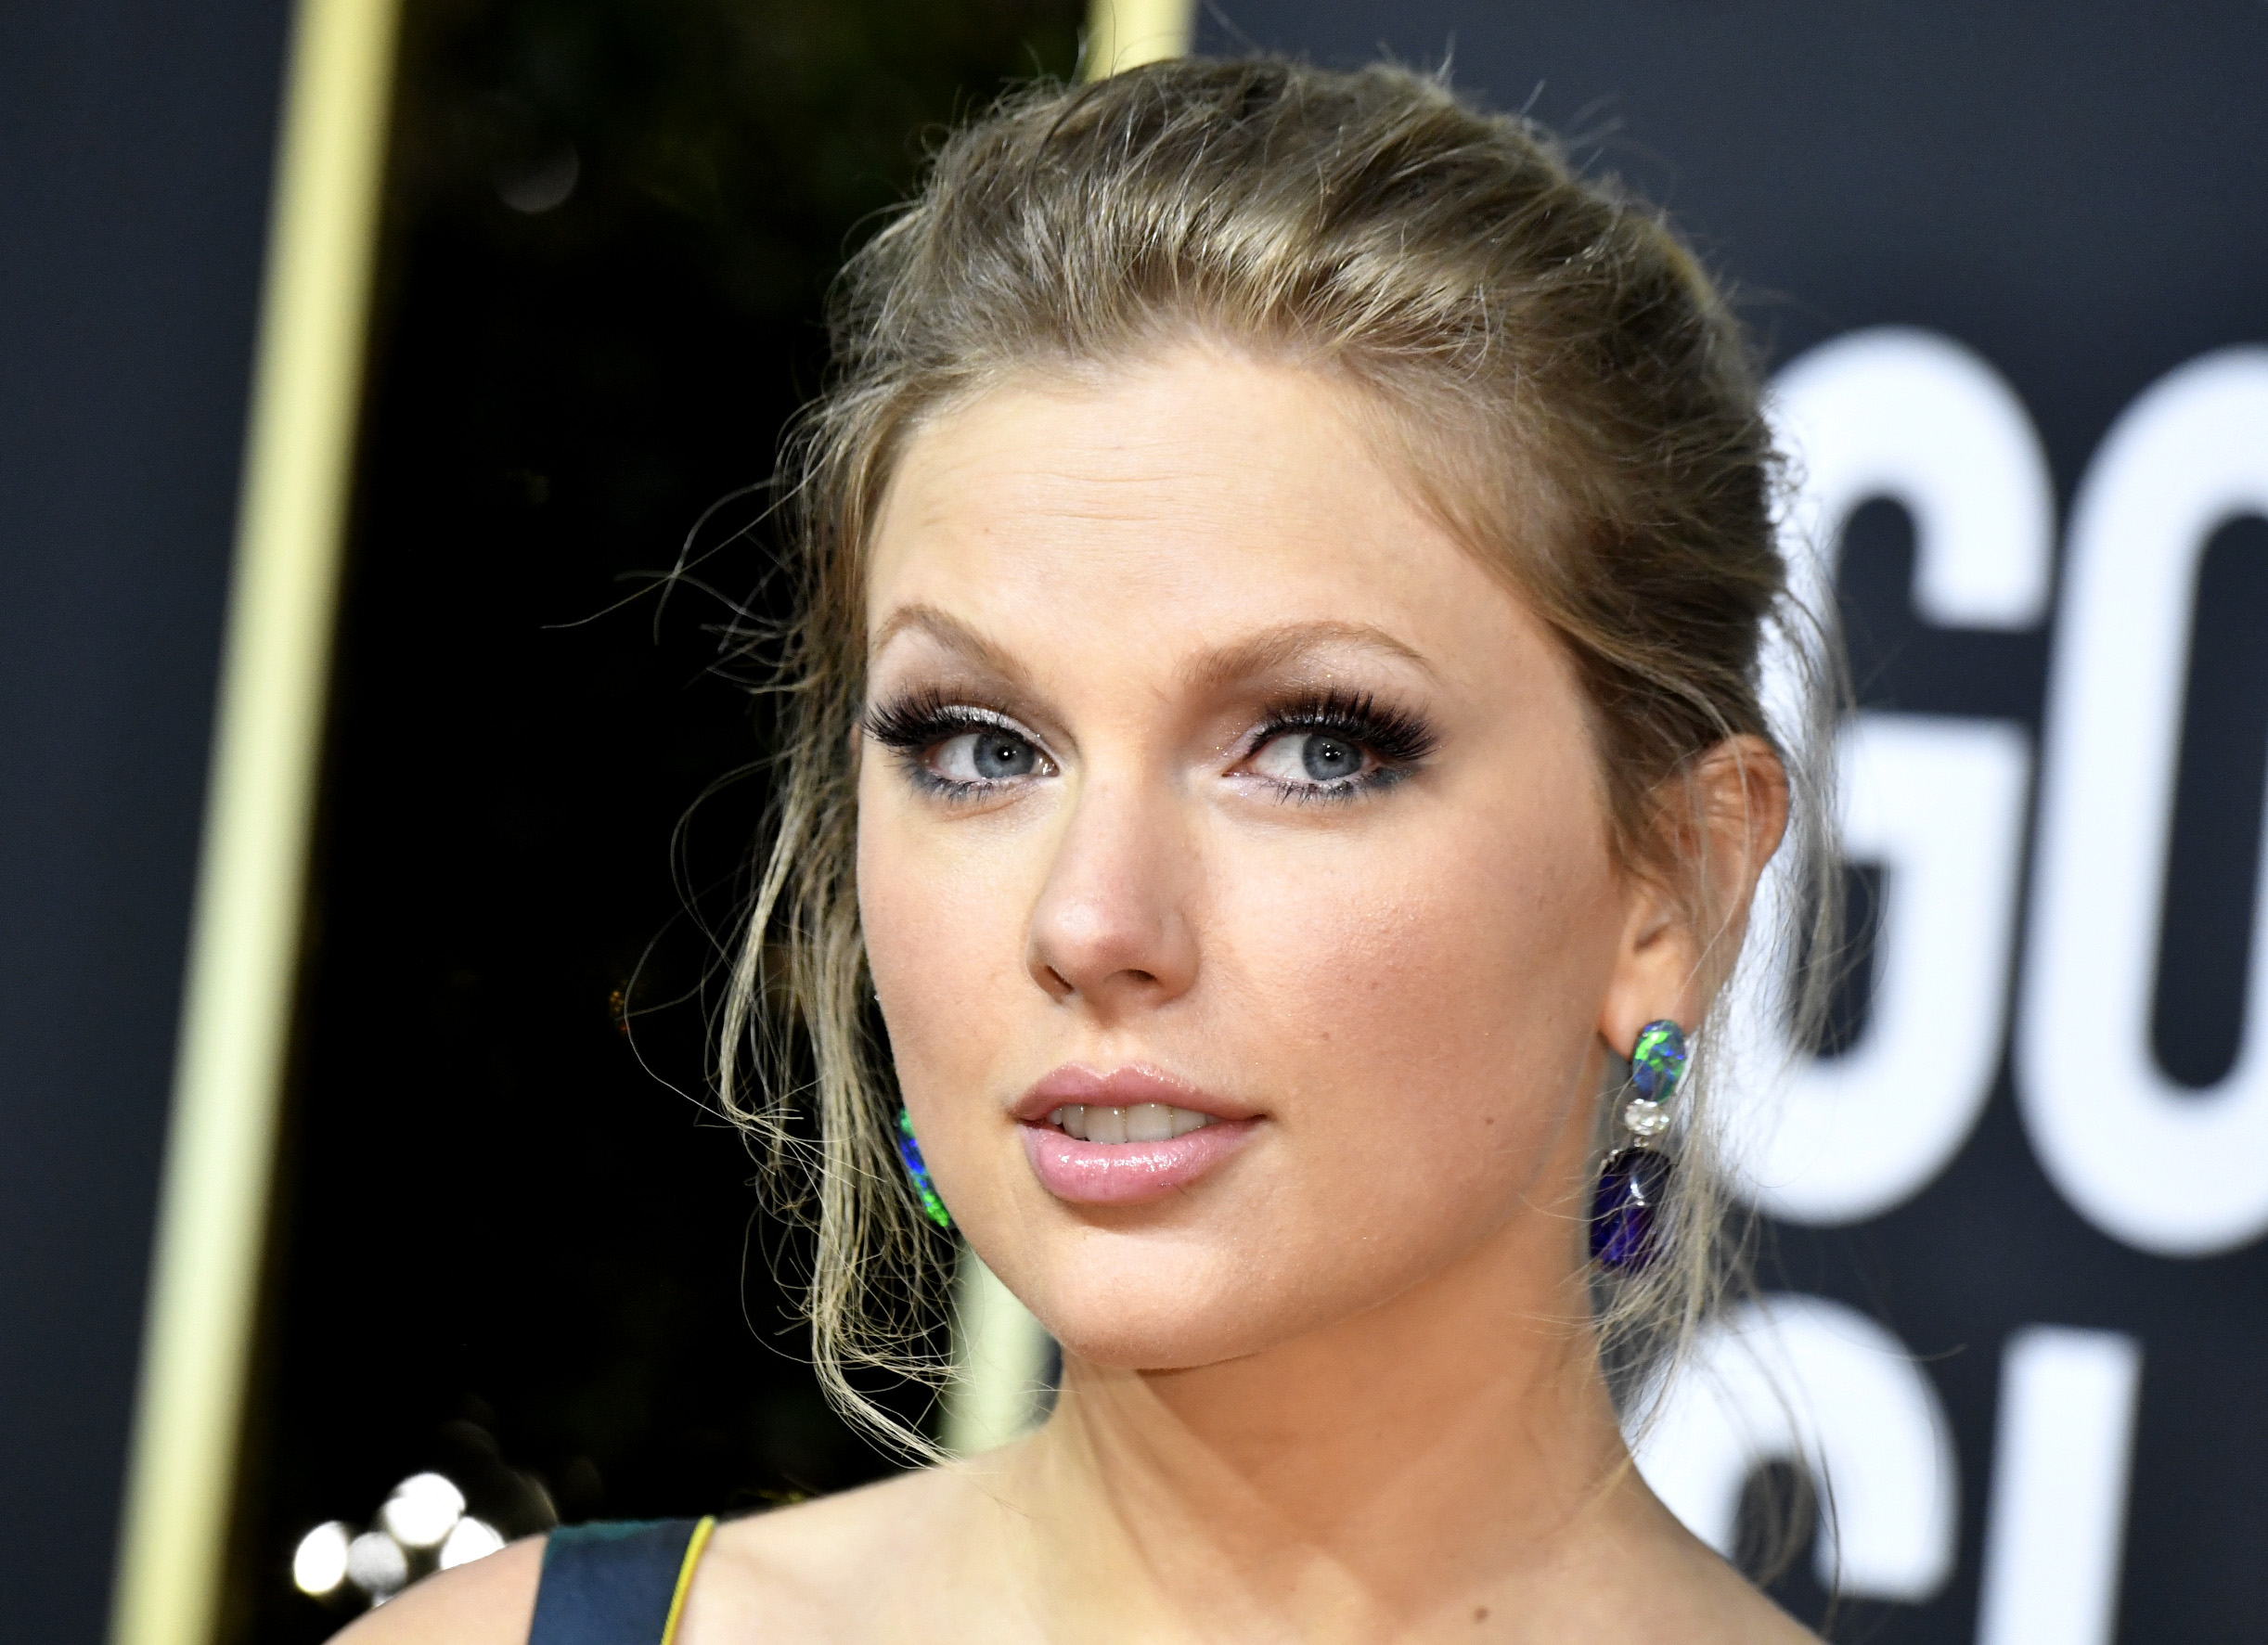 Taylor Swift Releases Lyric Video for Re-Recorded 'Love Story' – Rolling Stone